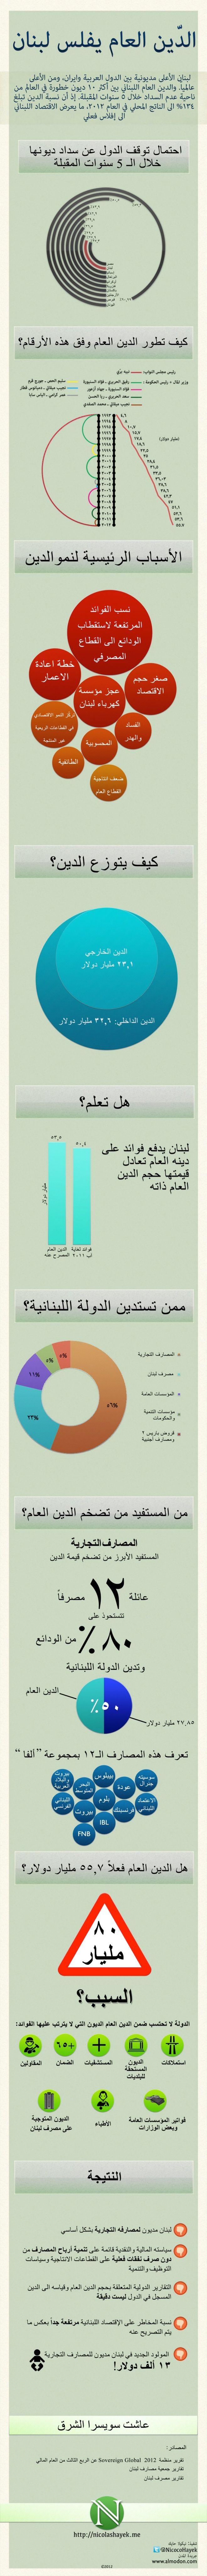 Lebanese National Debt Explained Arabic